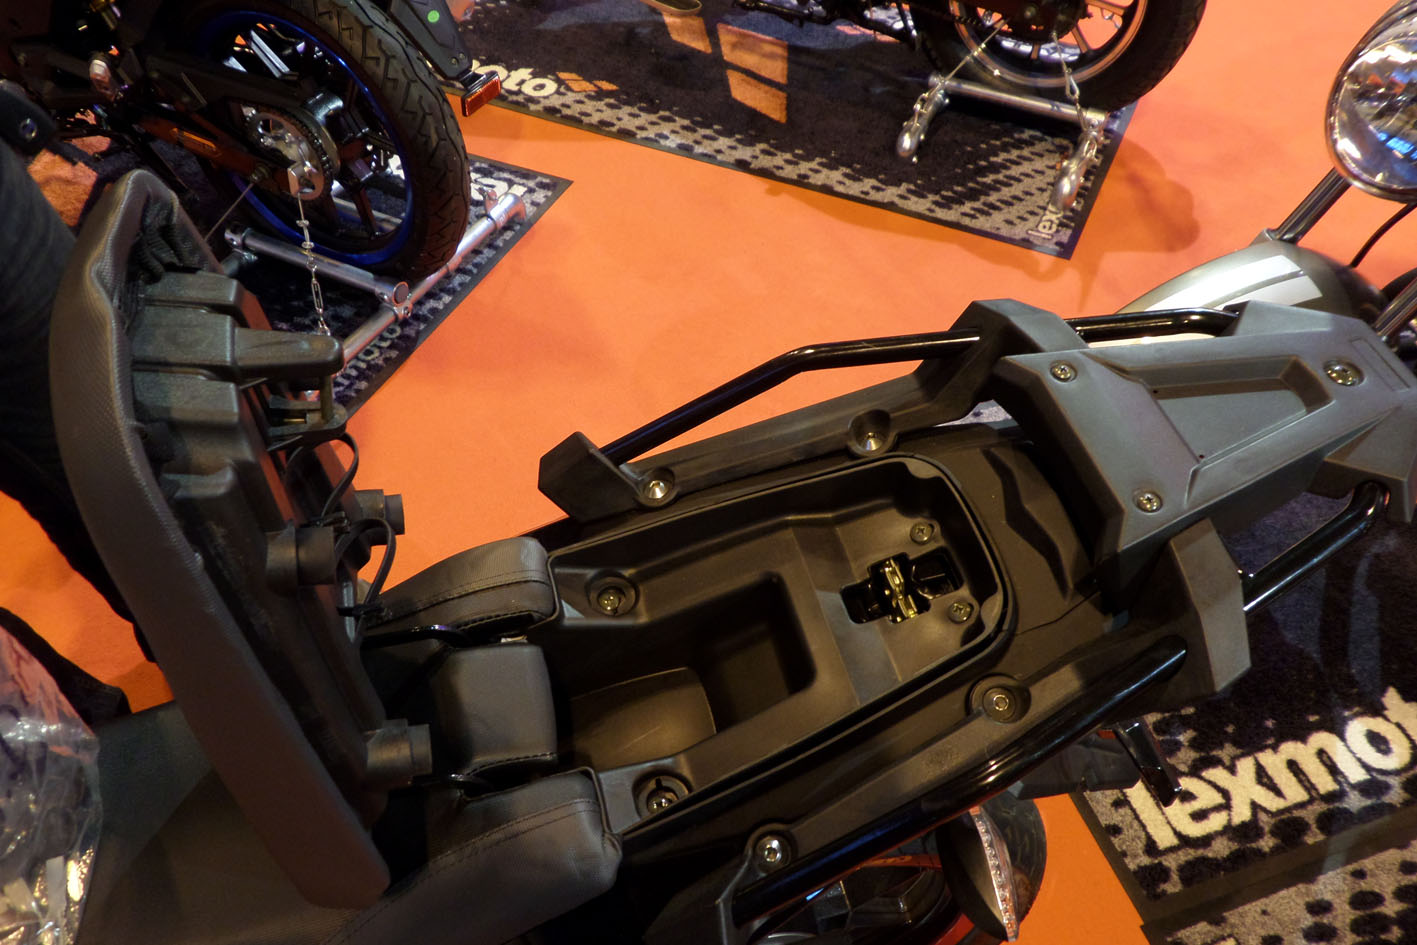 Here's a closer look at Lexmoto's 2016 range